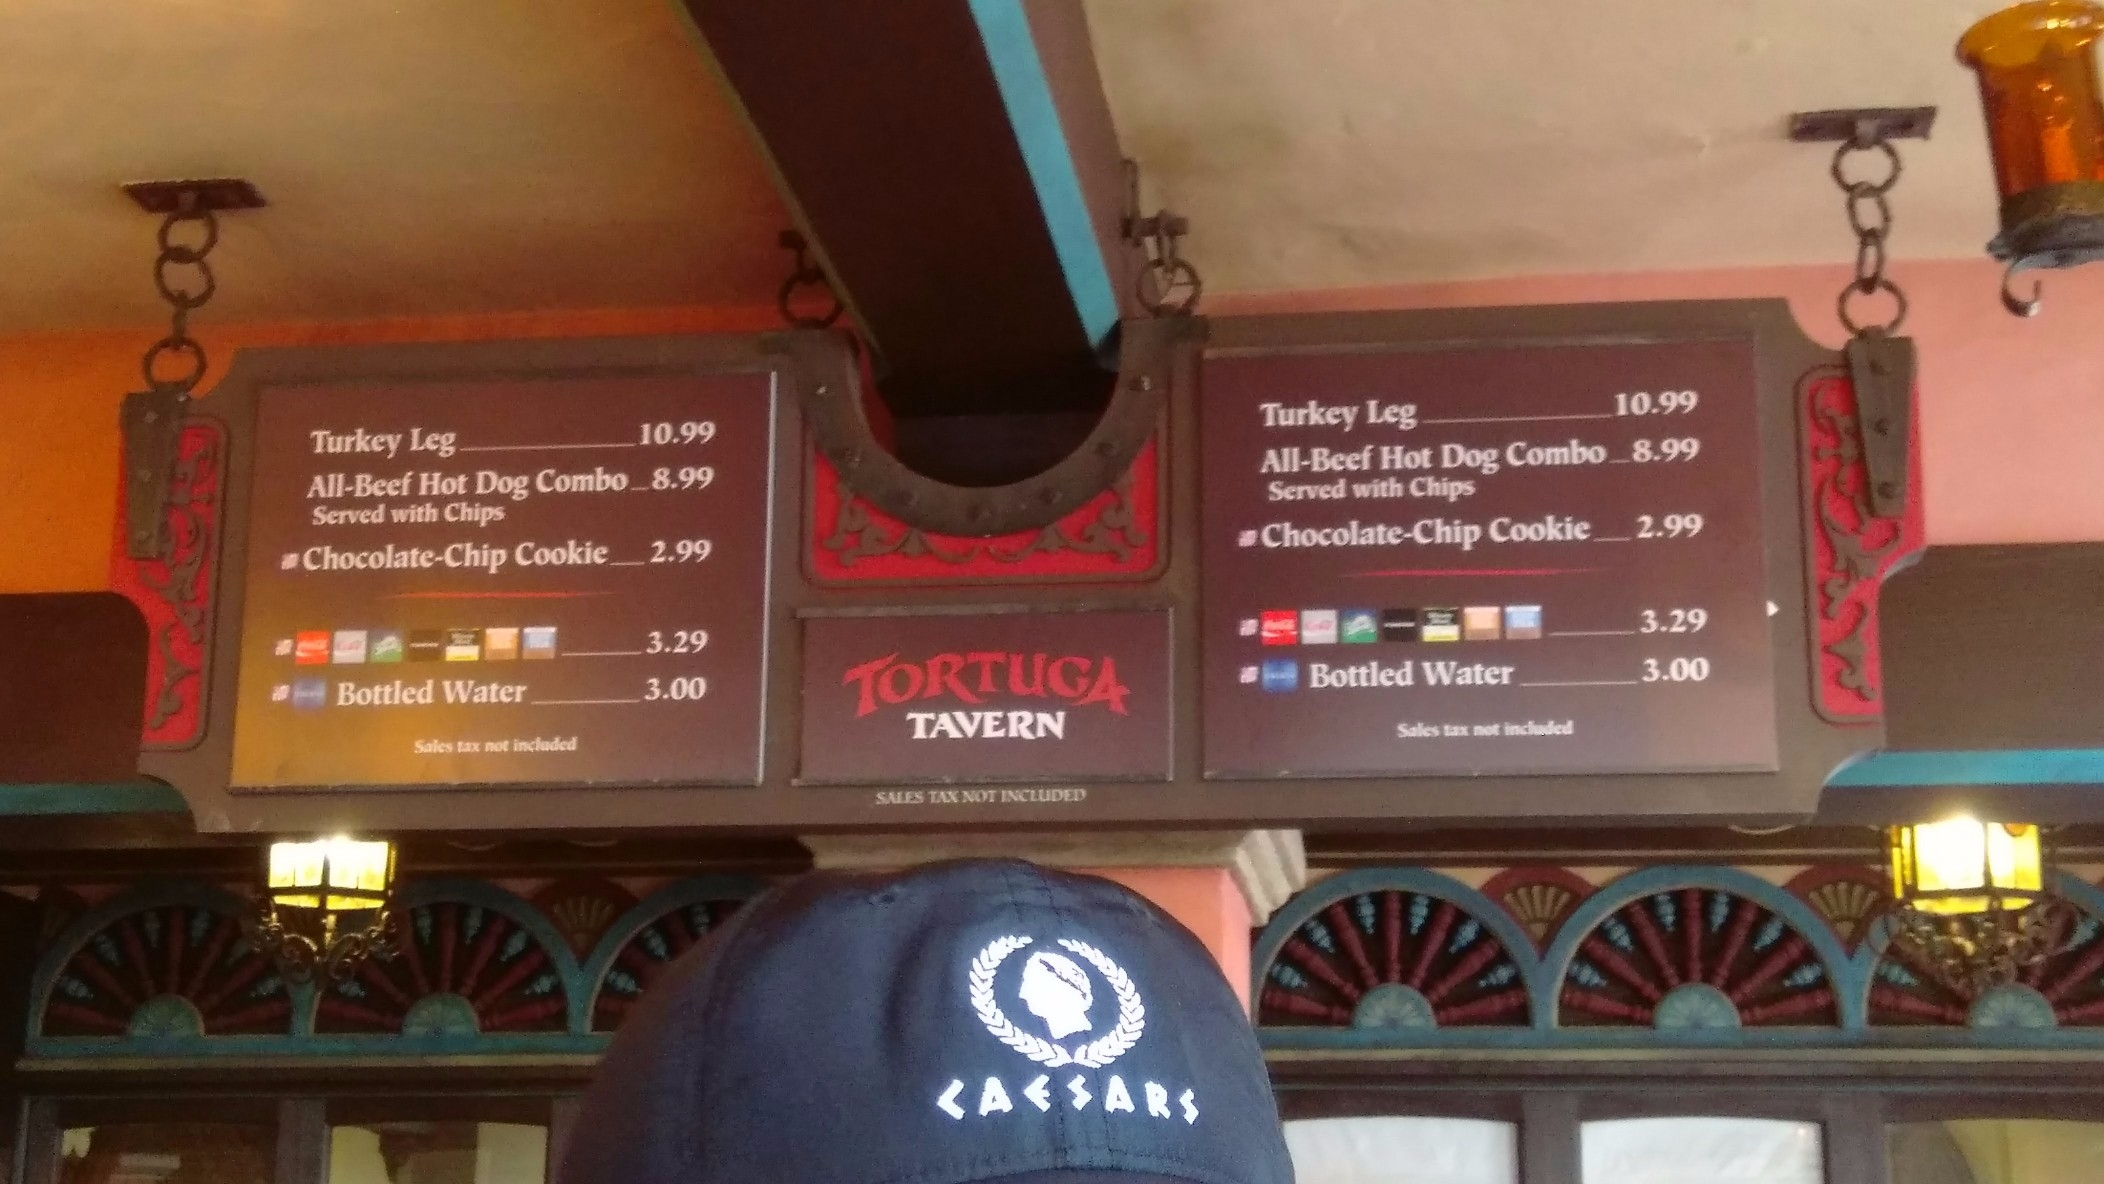 tortuga tavern menu snack credits magic kingdom